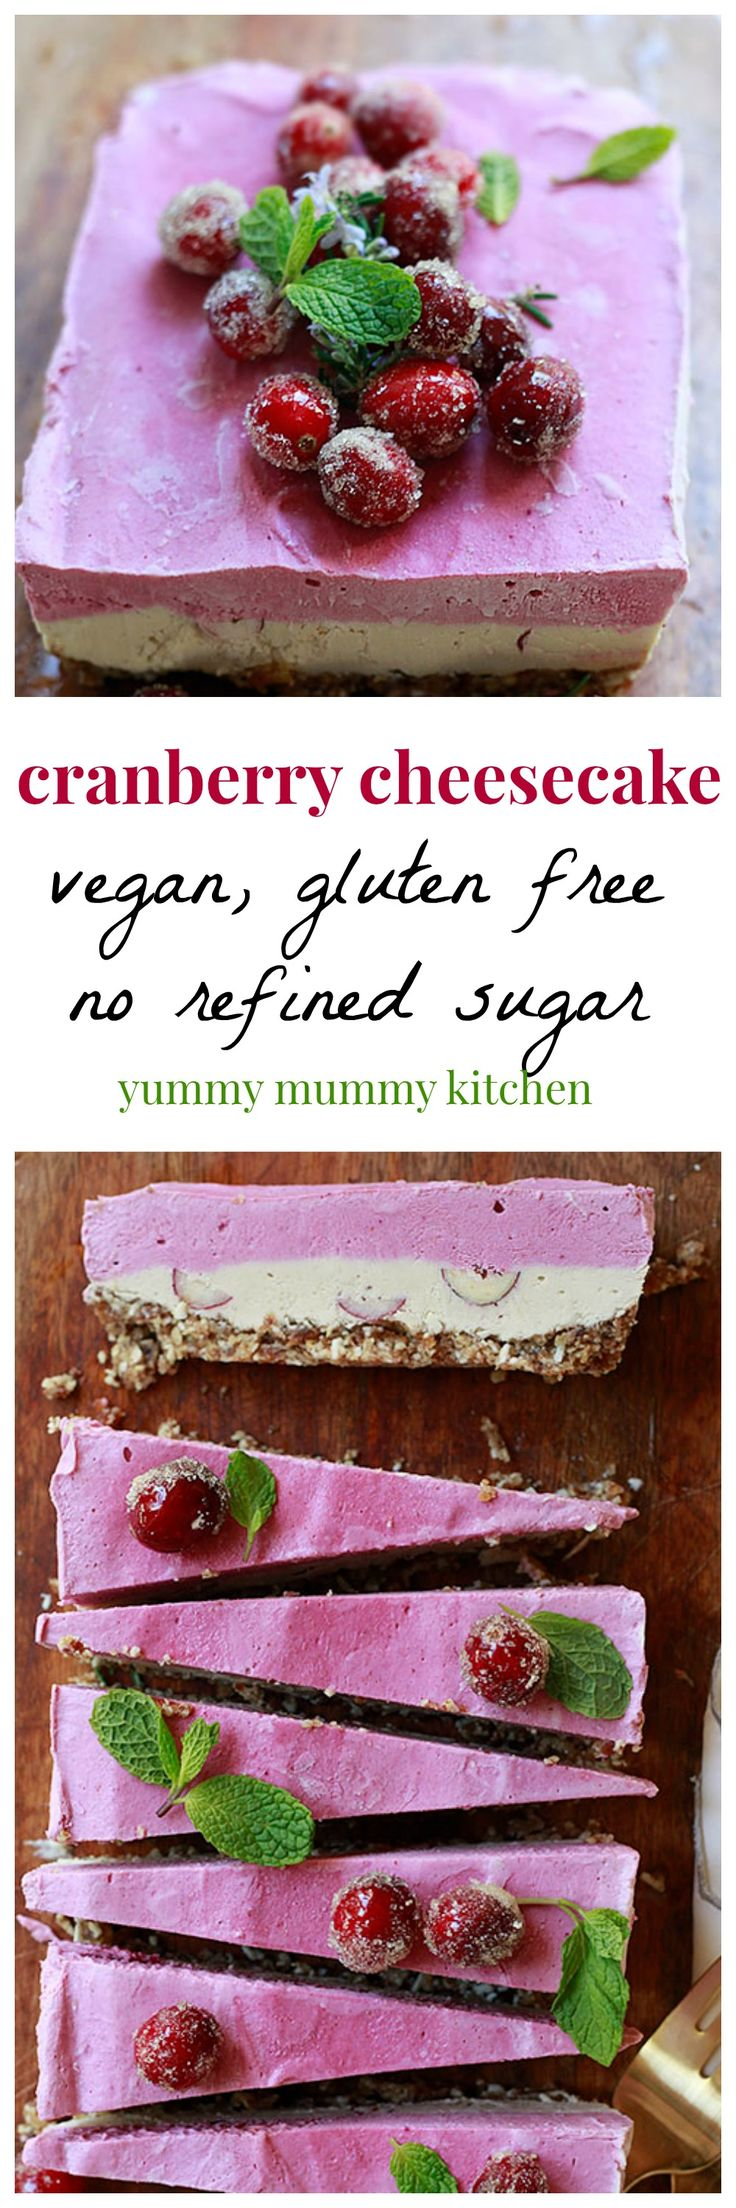 This gorgeous vegan cheesecake recipe is made out of dates and nuts. It's so easy and our family devoured it in one day. We love it frozen like an ice cream pie.